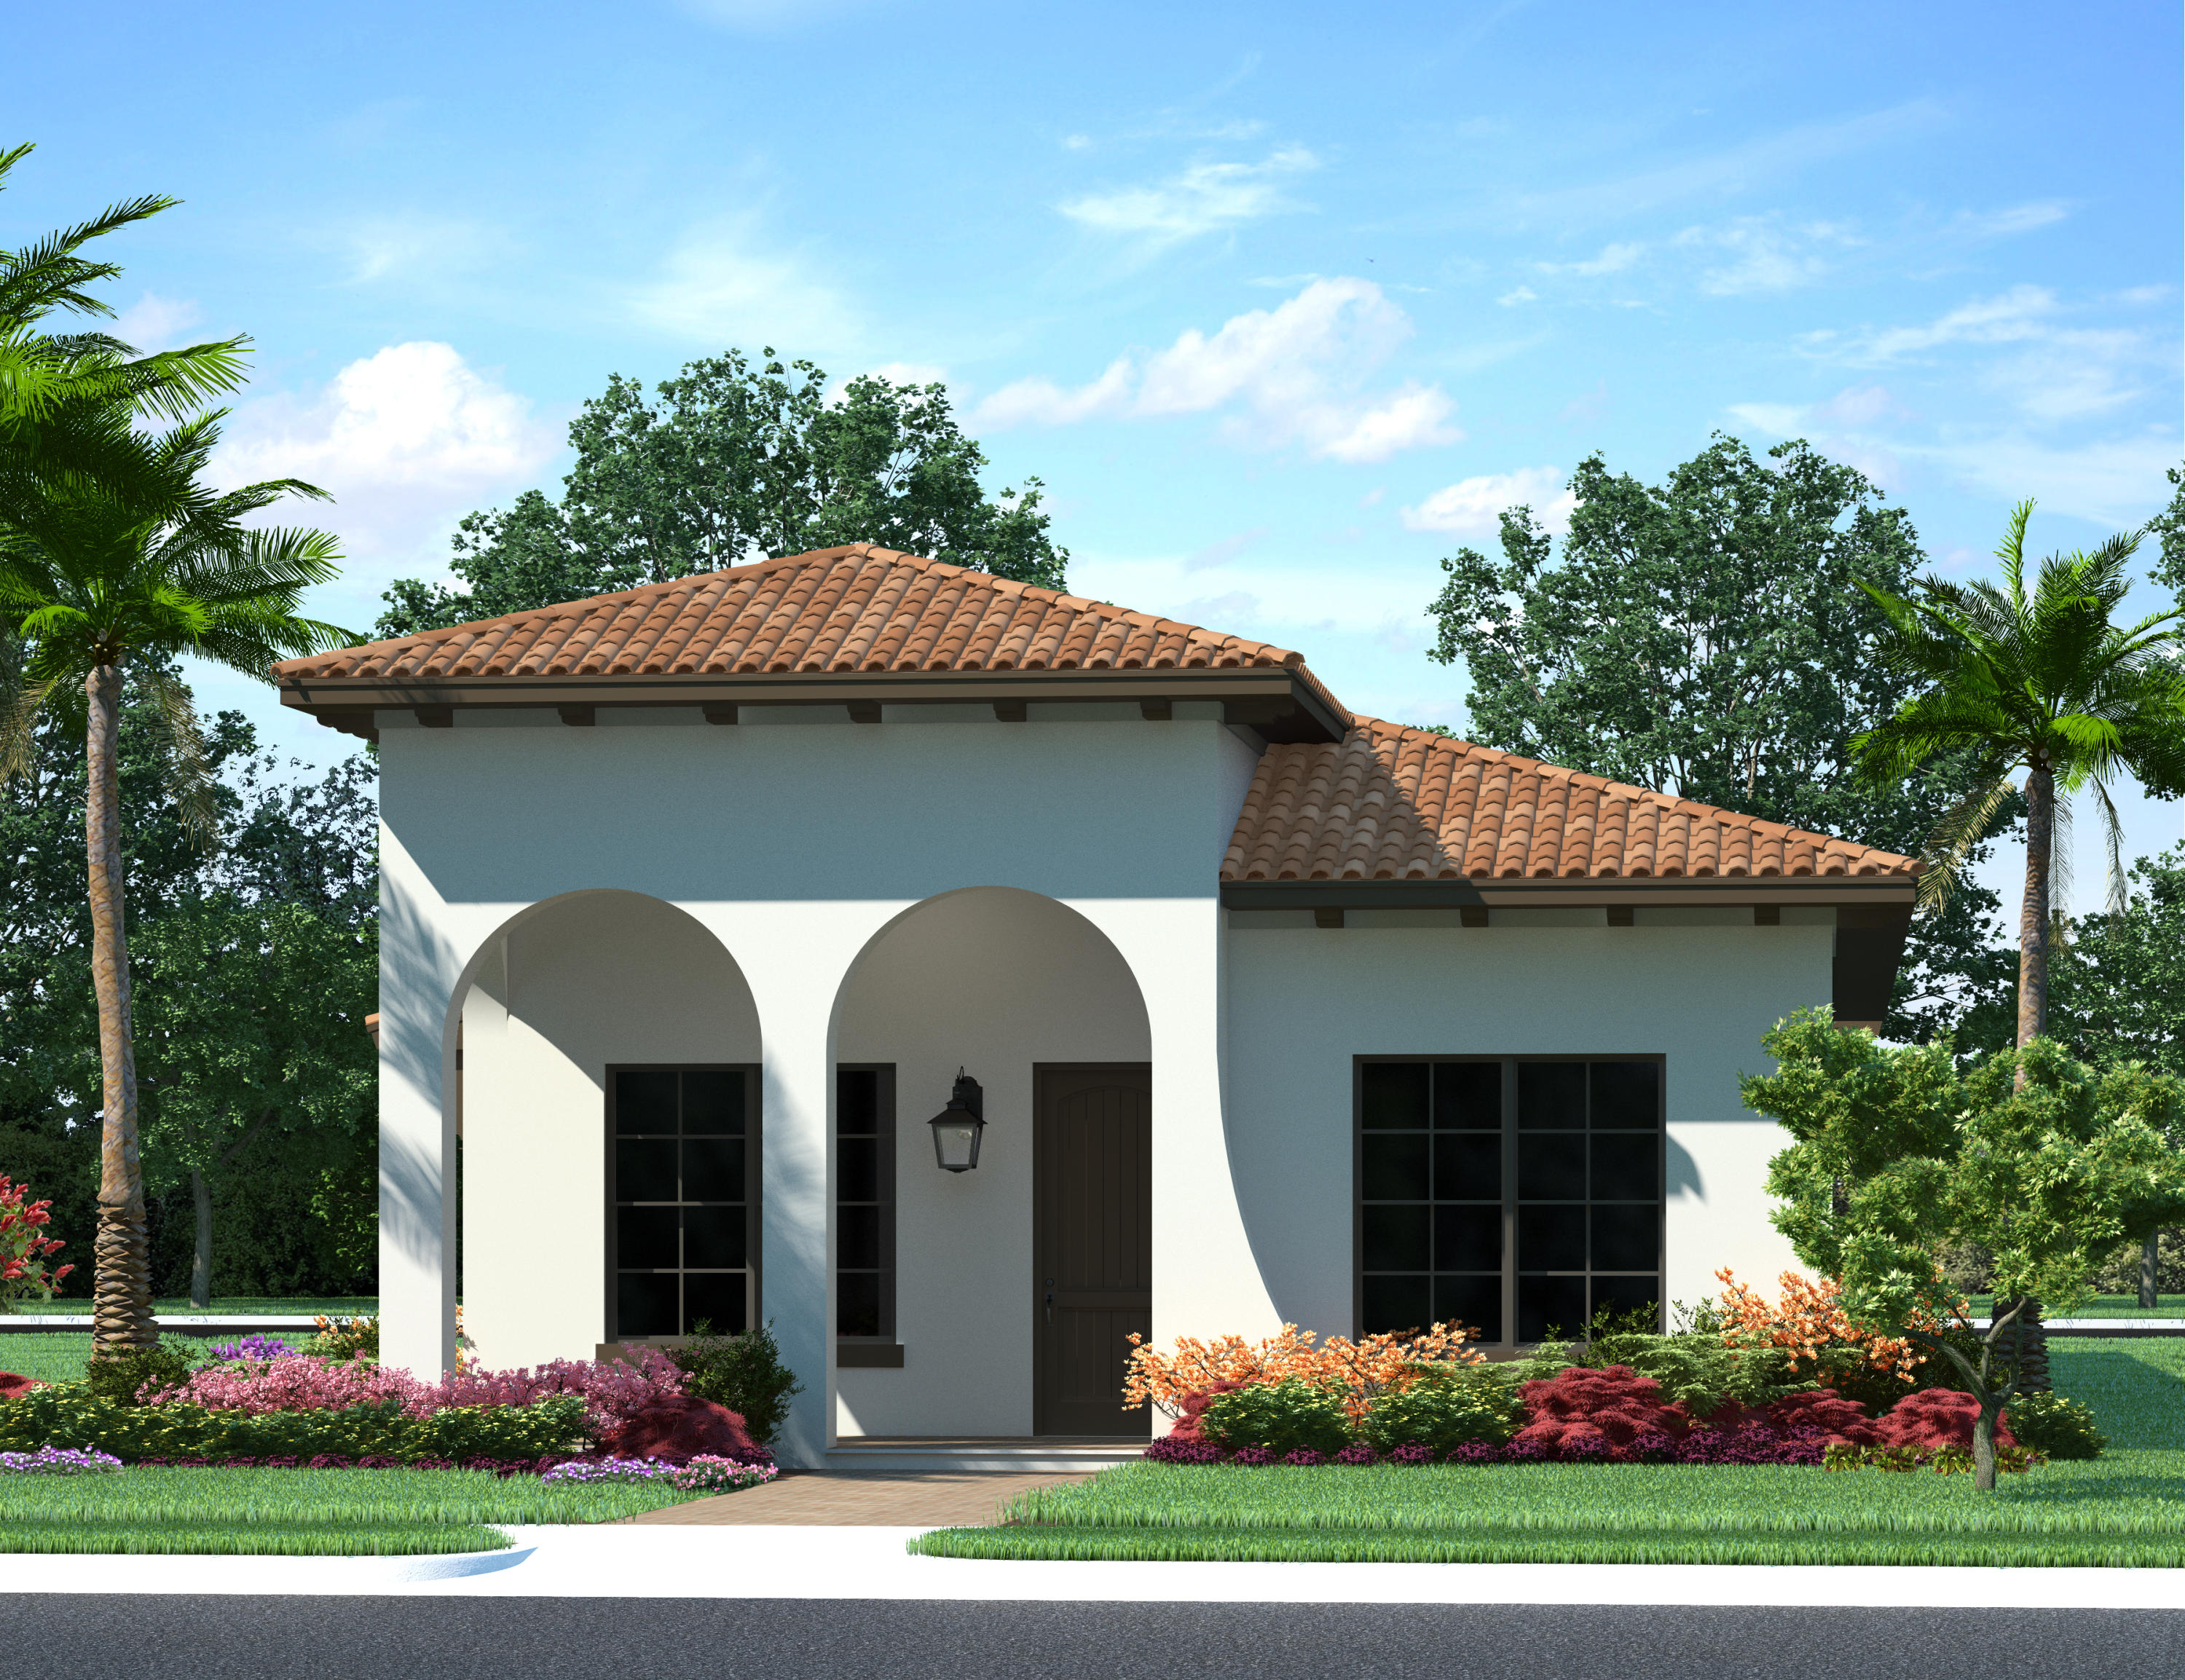 New Home for sale at 8043 Hobbes Way in Palm Beach Gardens